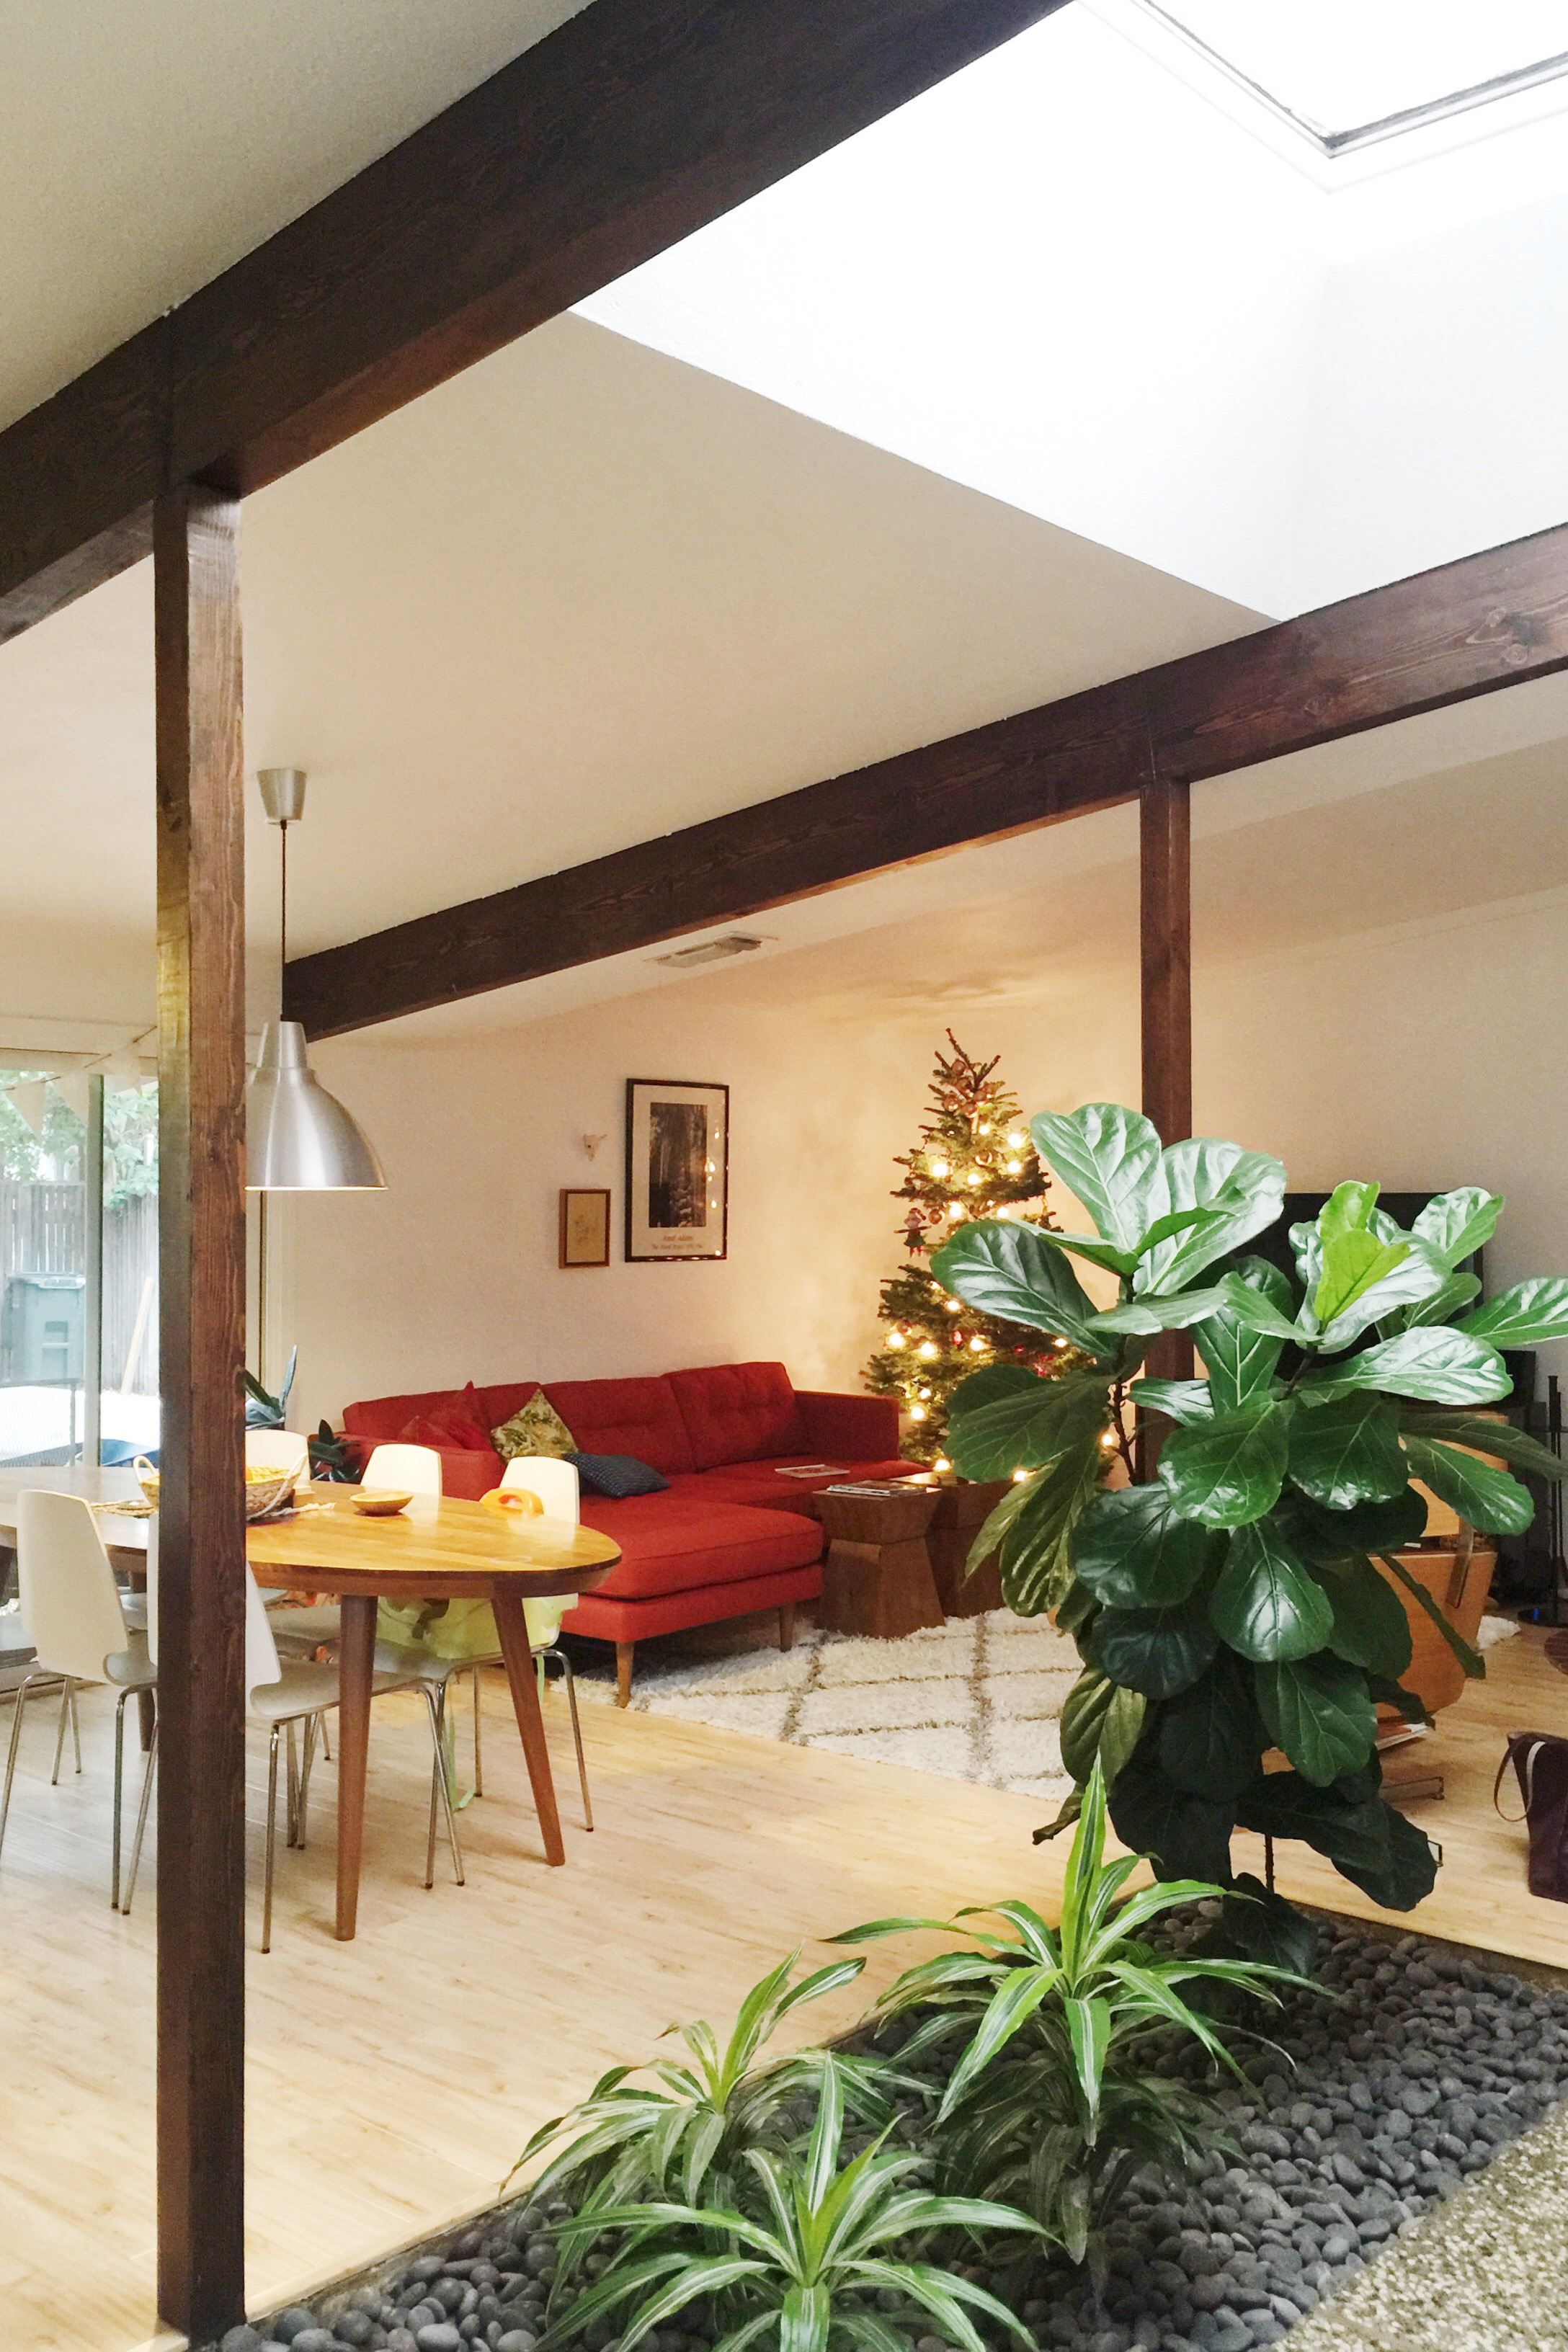 Exposed beams and atriums: the heart of the house.